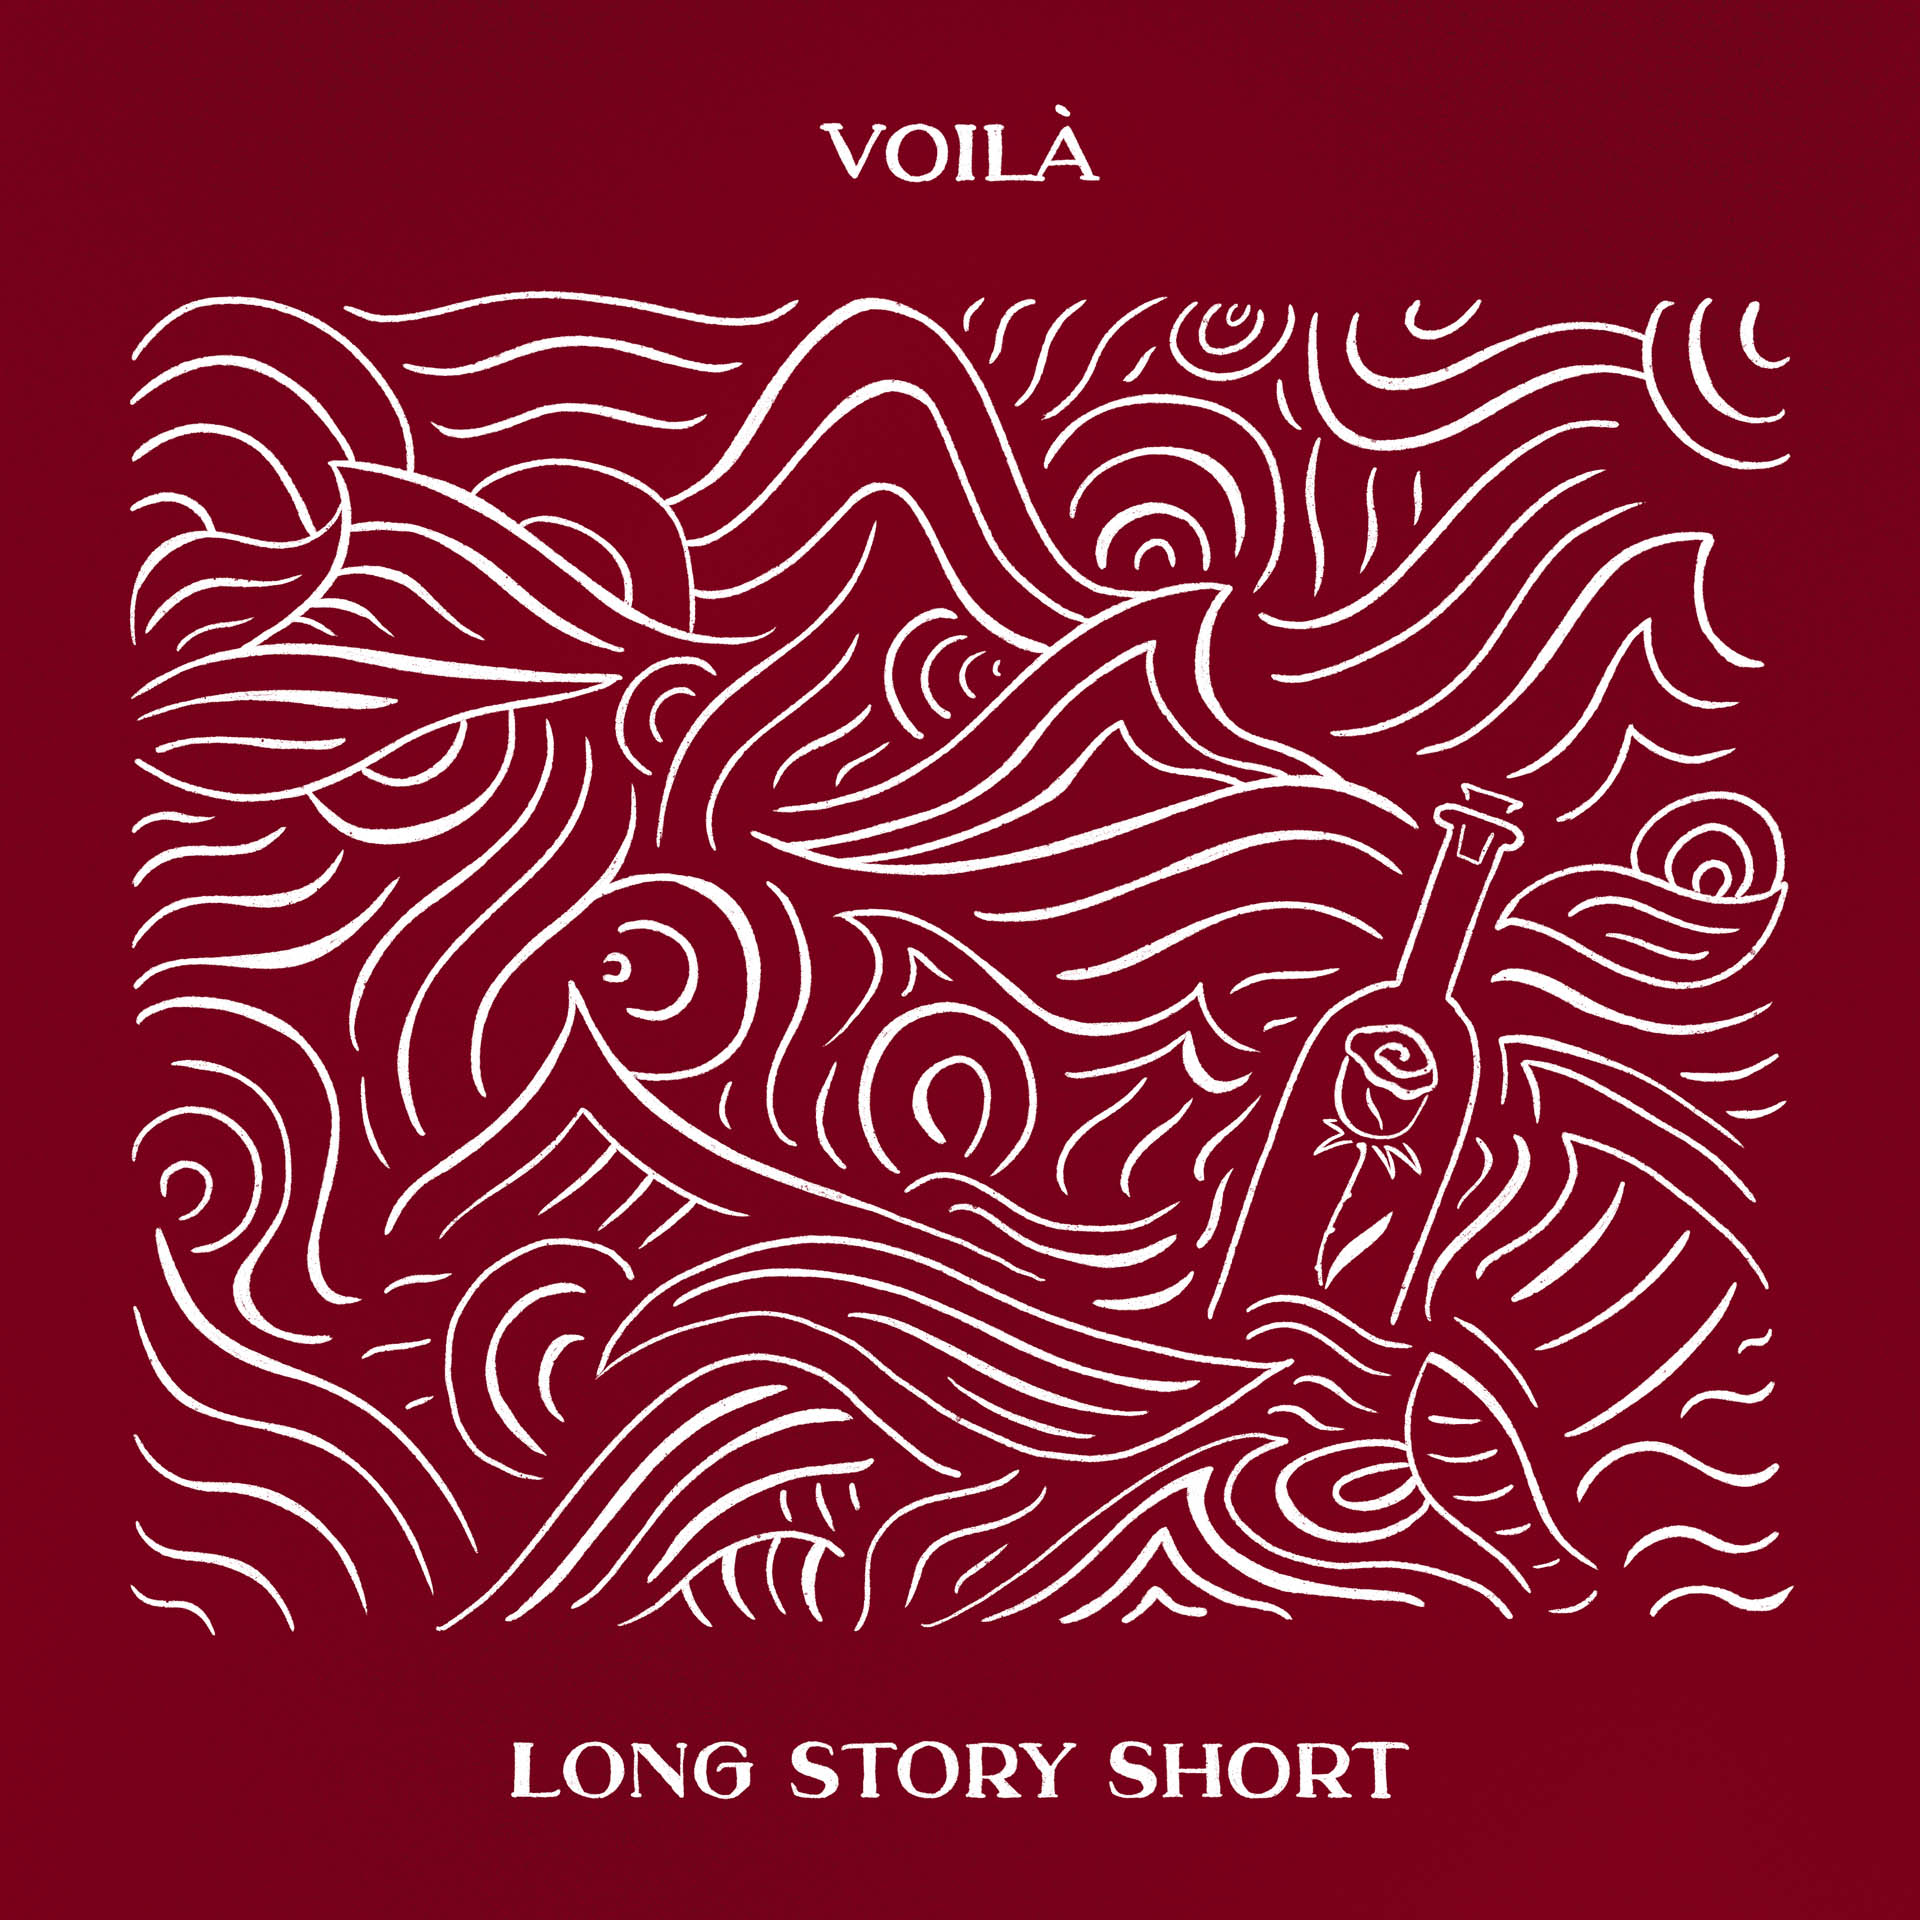 Voila - Long Story Short